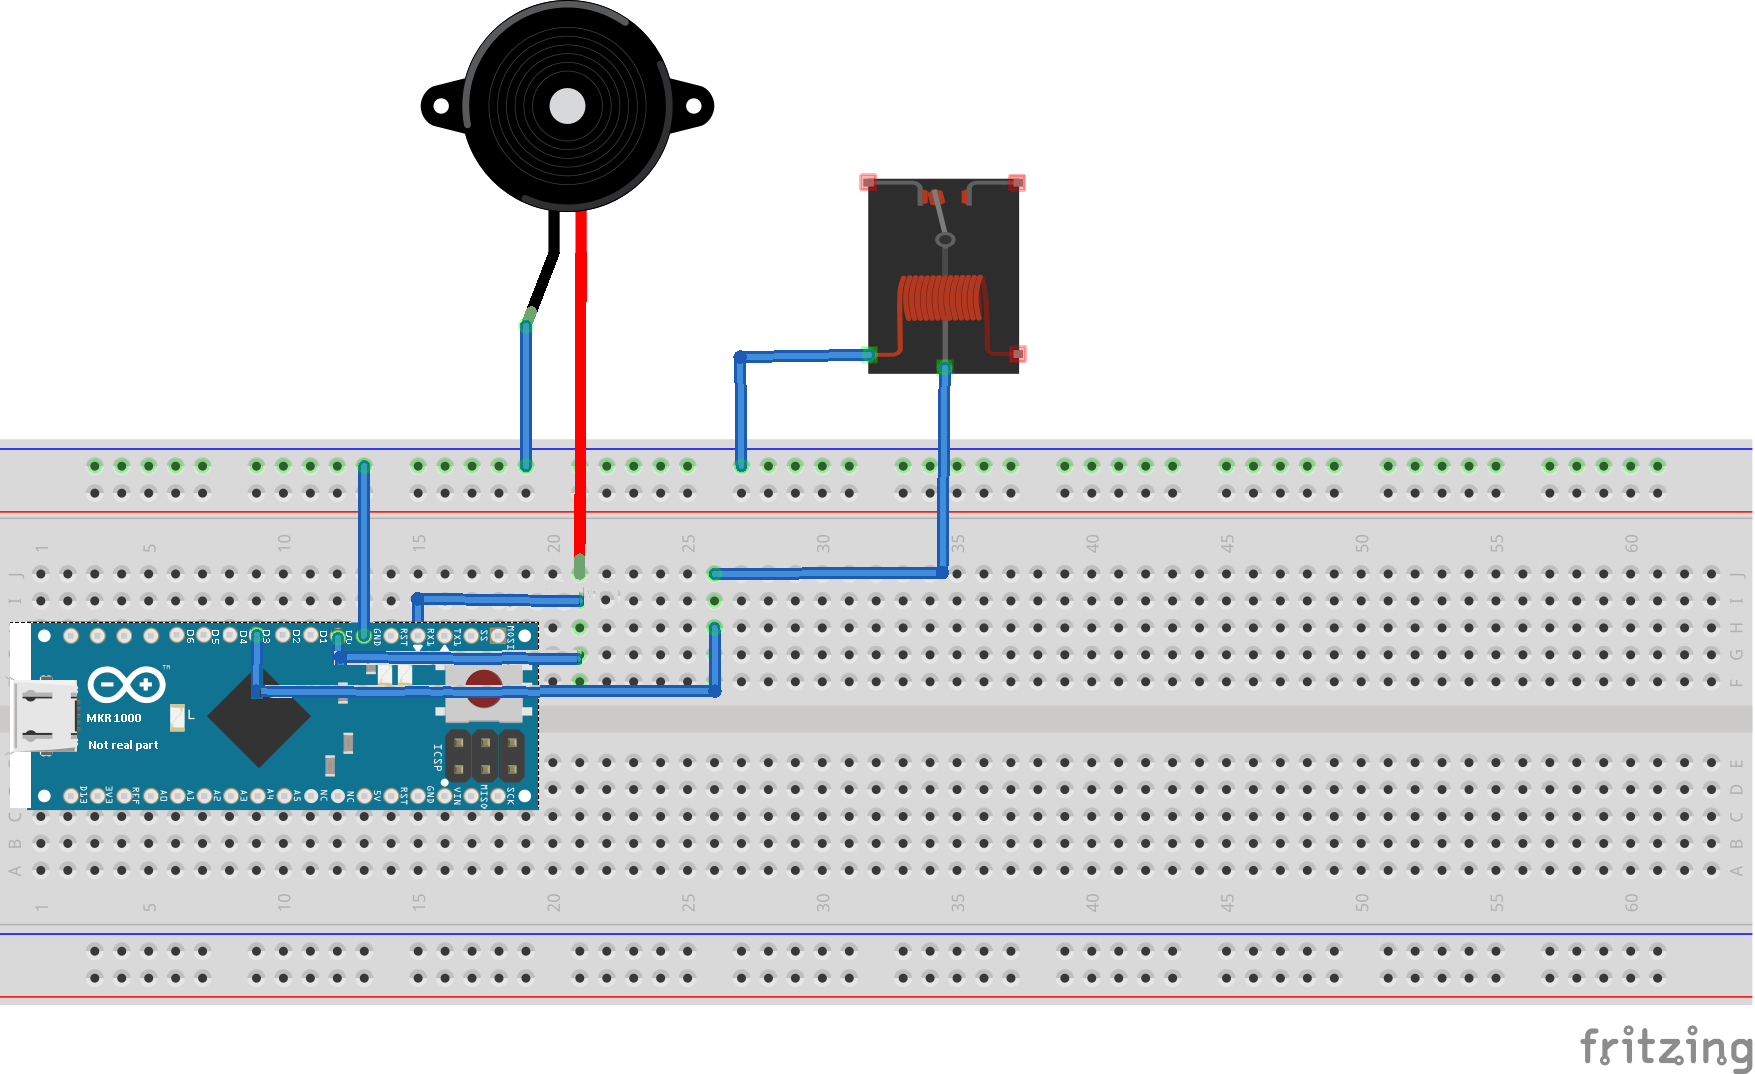 Keepthewifionbreadboard